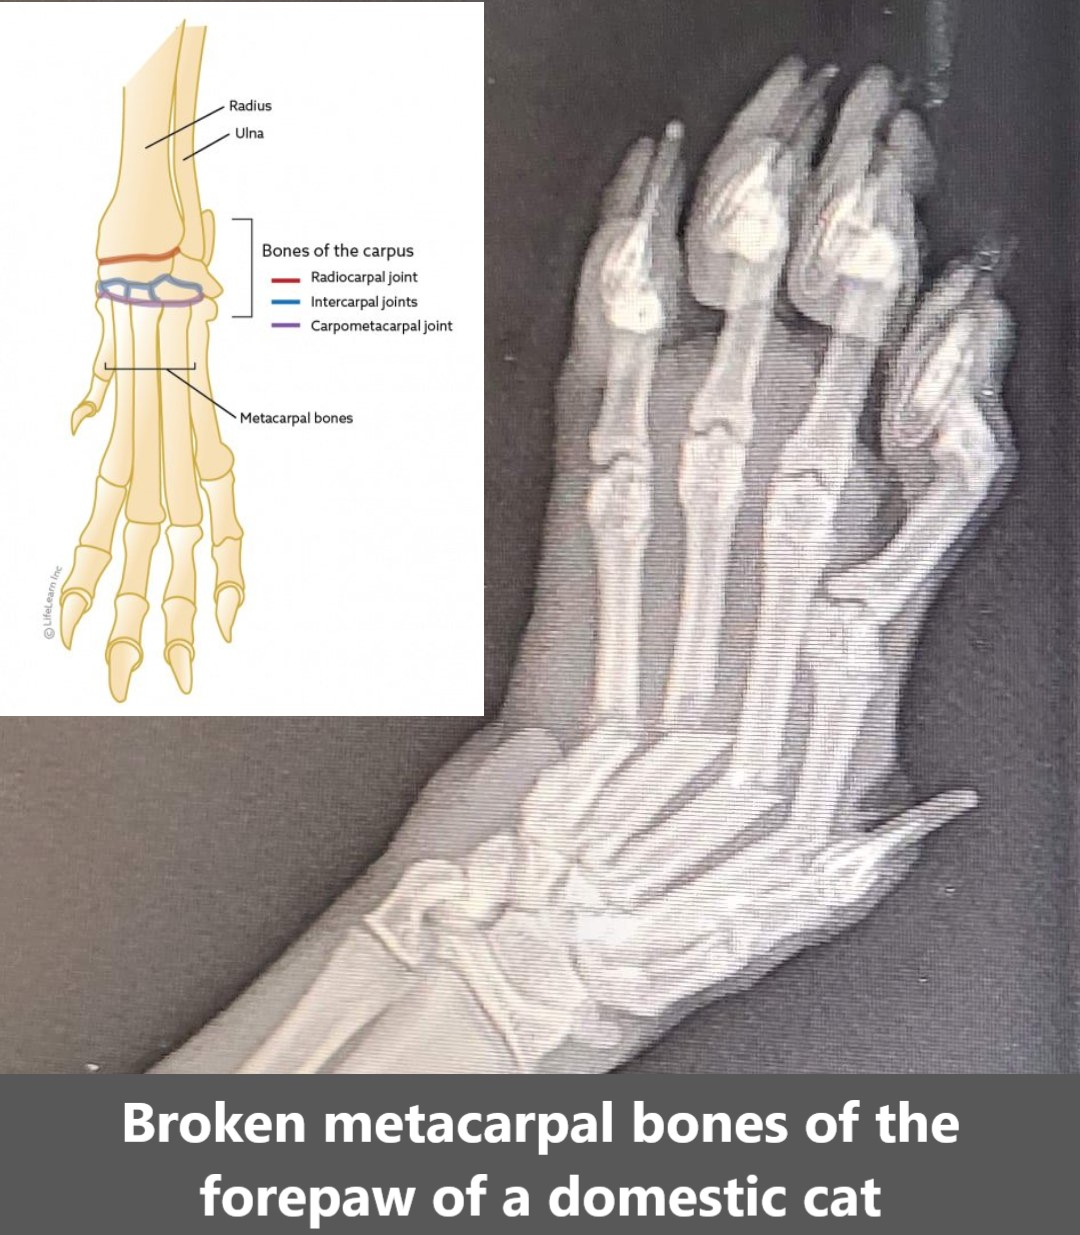 Broken metacarpal bones of the forepaw of a domestic cat due to unknown trauma